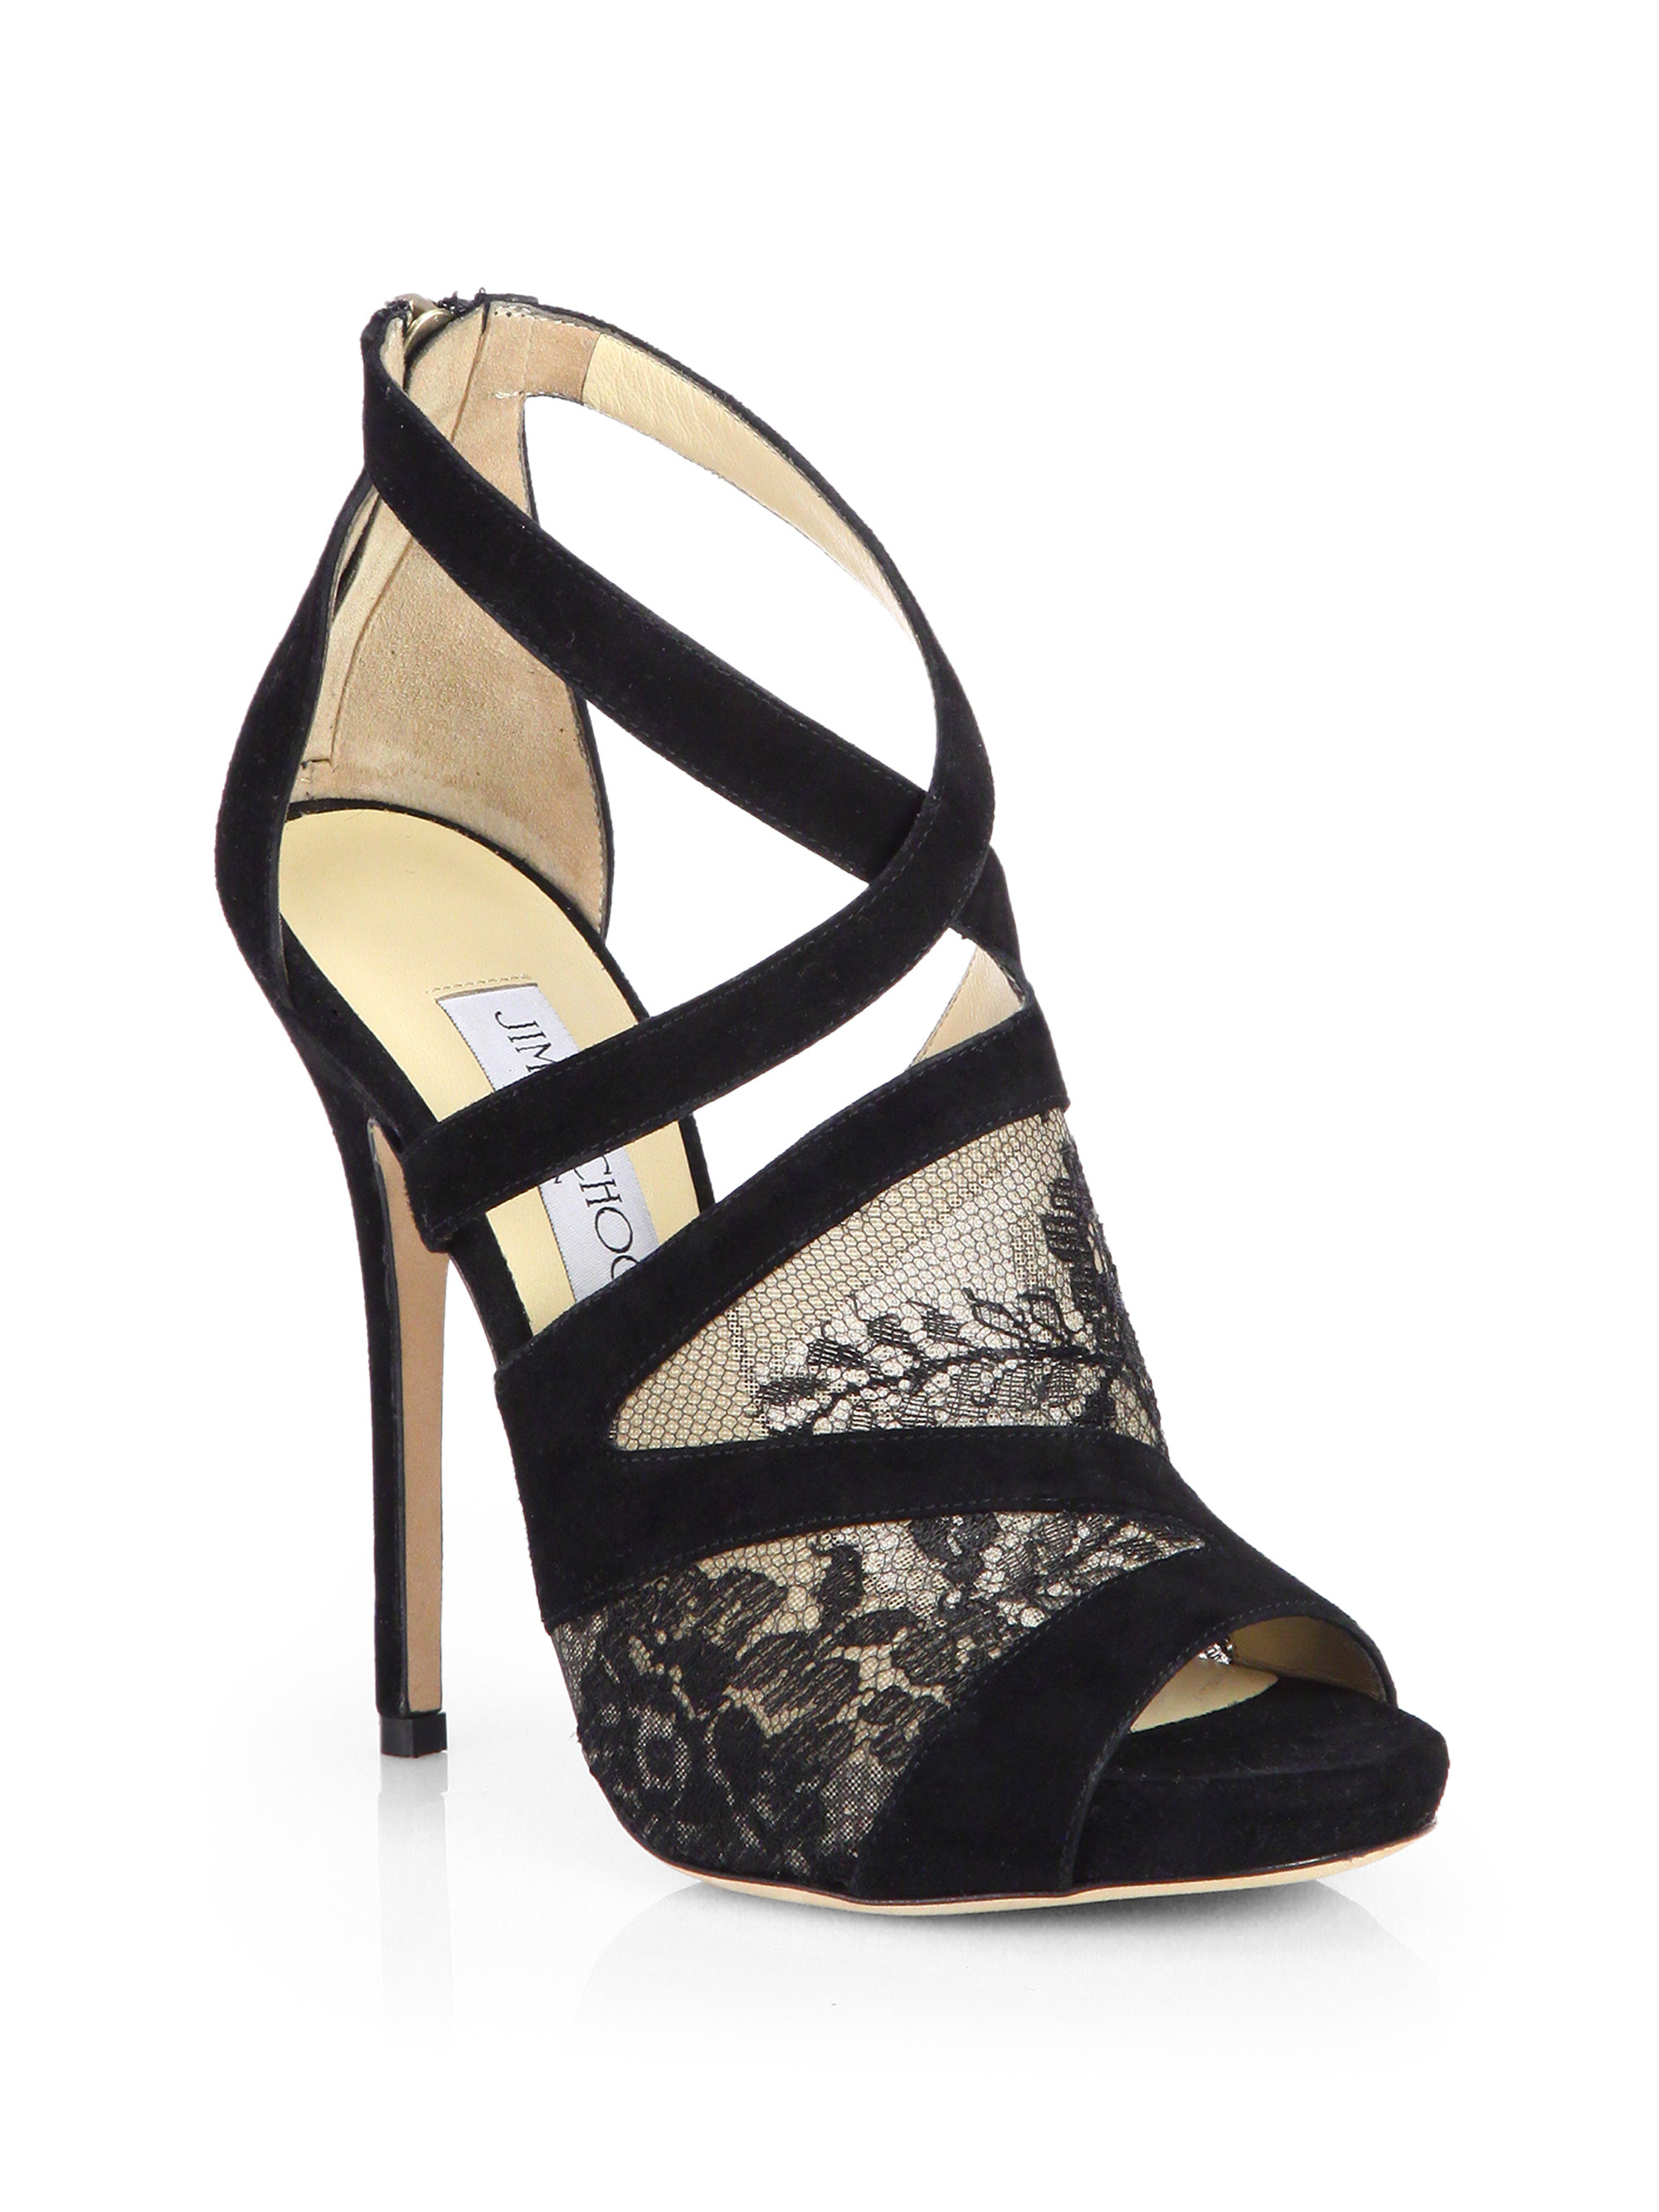 Lyst Jimmy Choo Vantage Suede Amp Lace Platform Sandals In